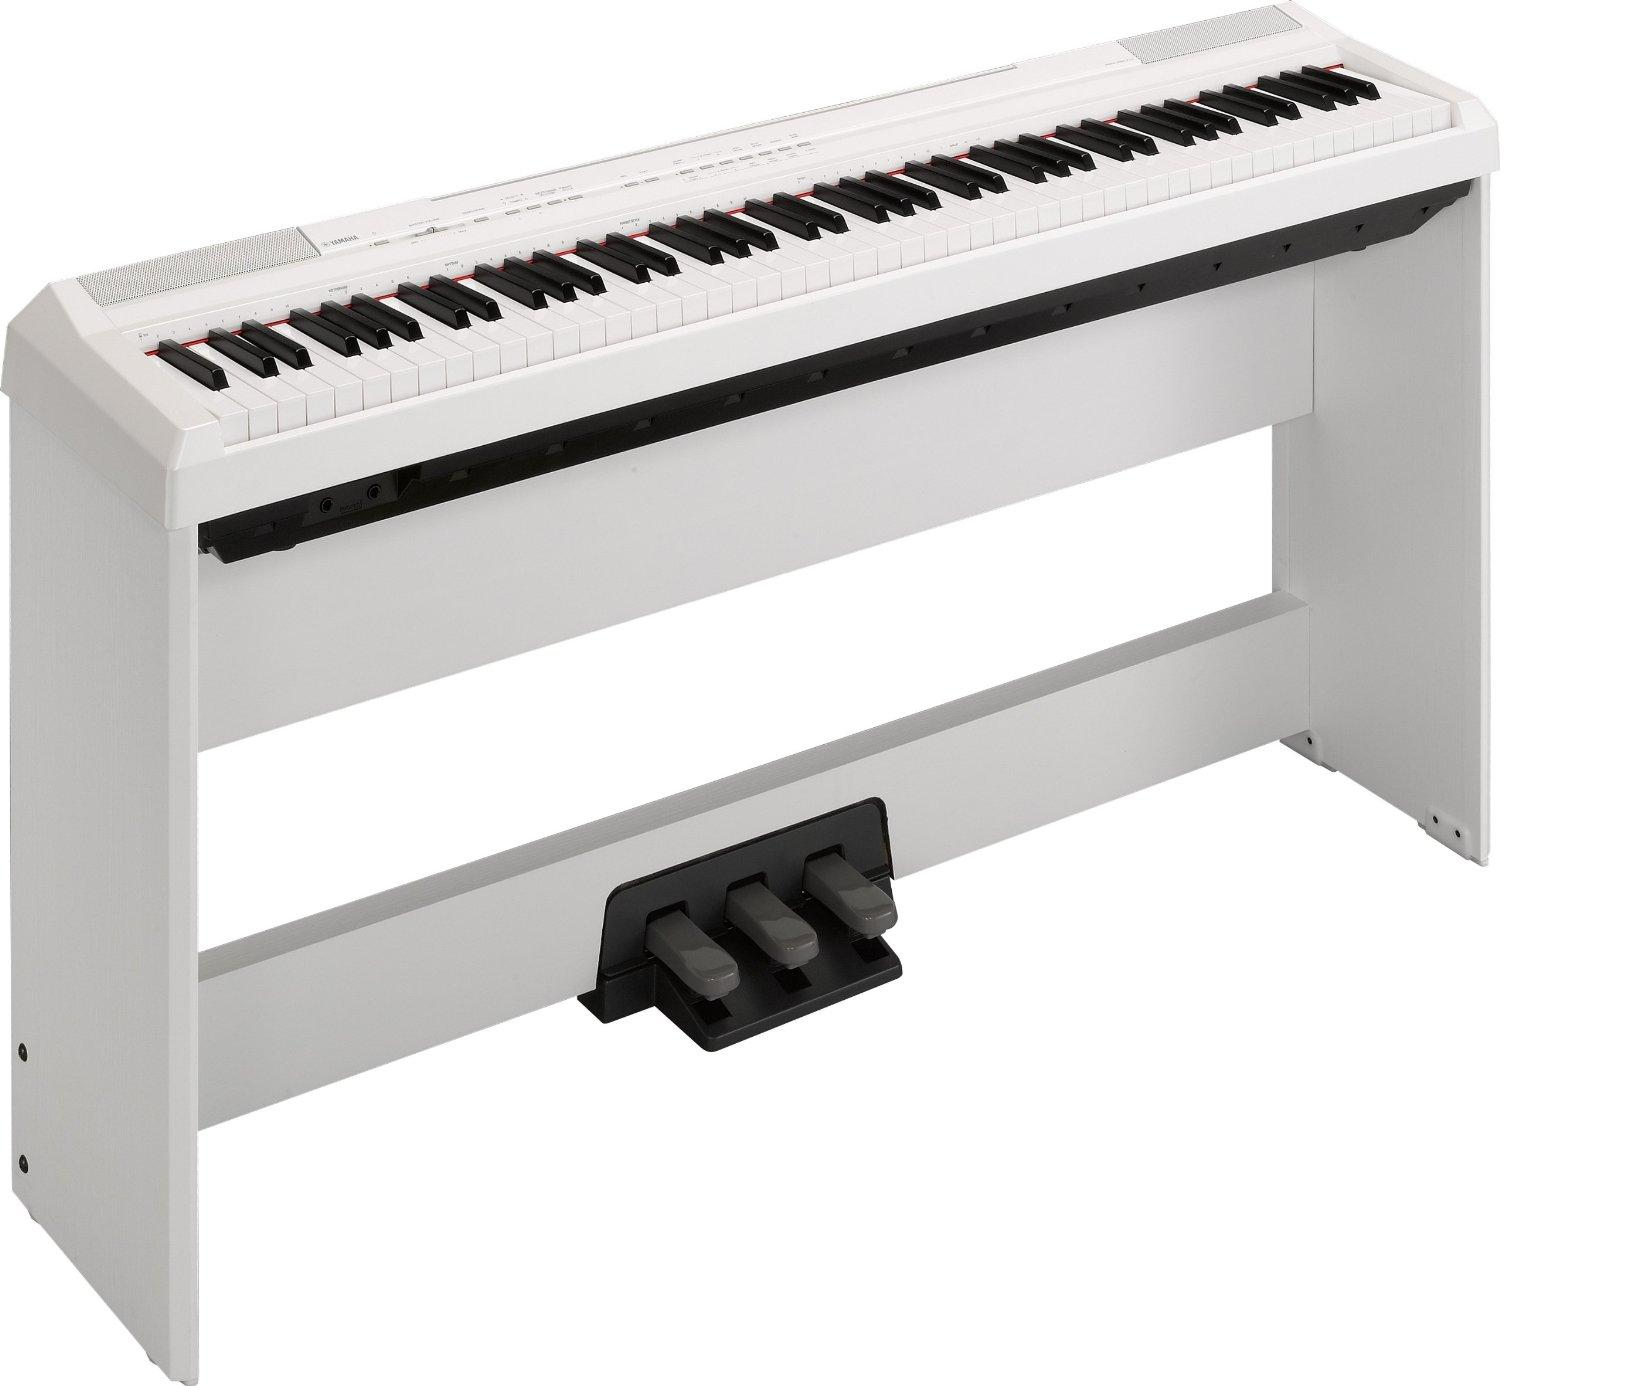 yamaha p105wh digital piano review. Black Bedroom Furniture Sets. Home Design Ideas